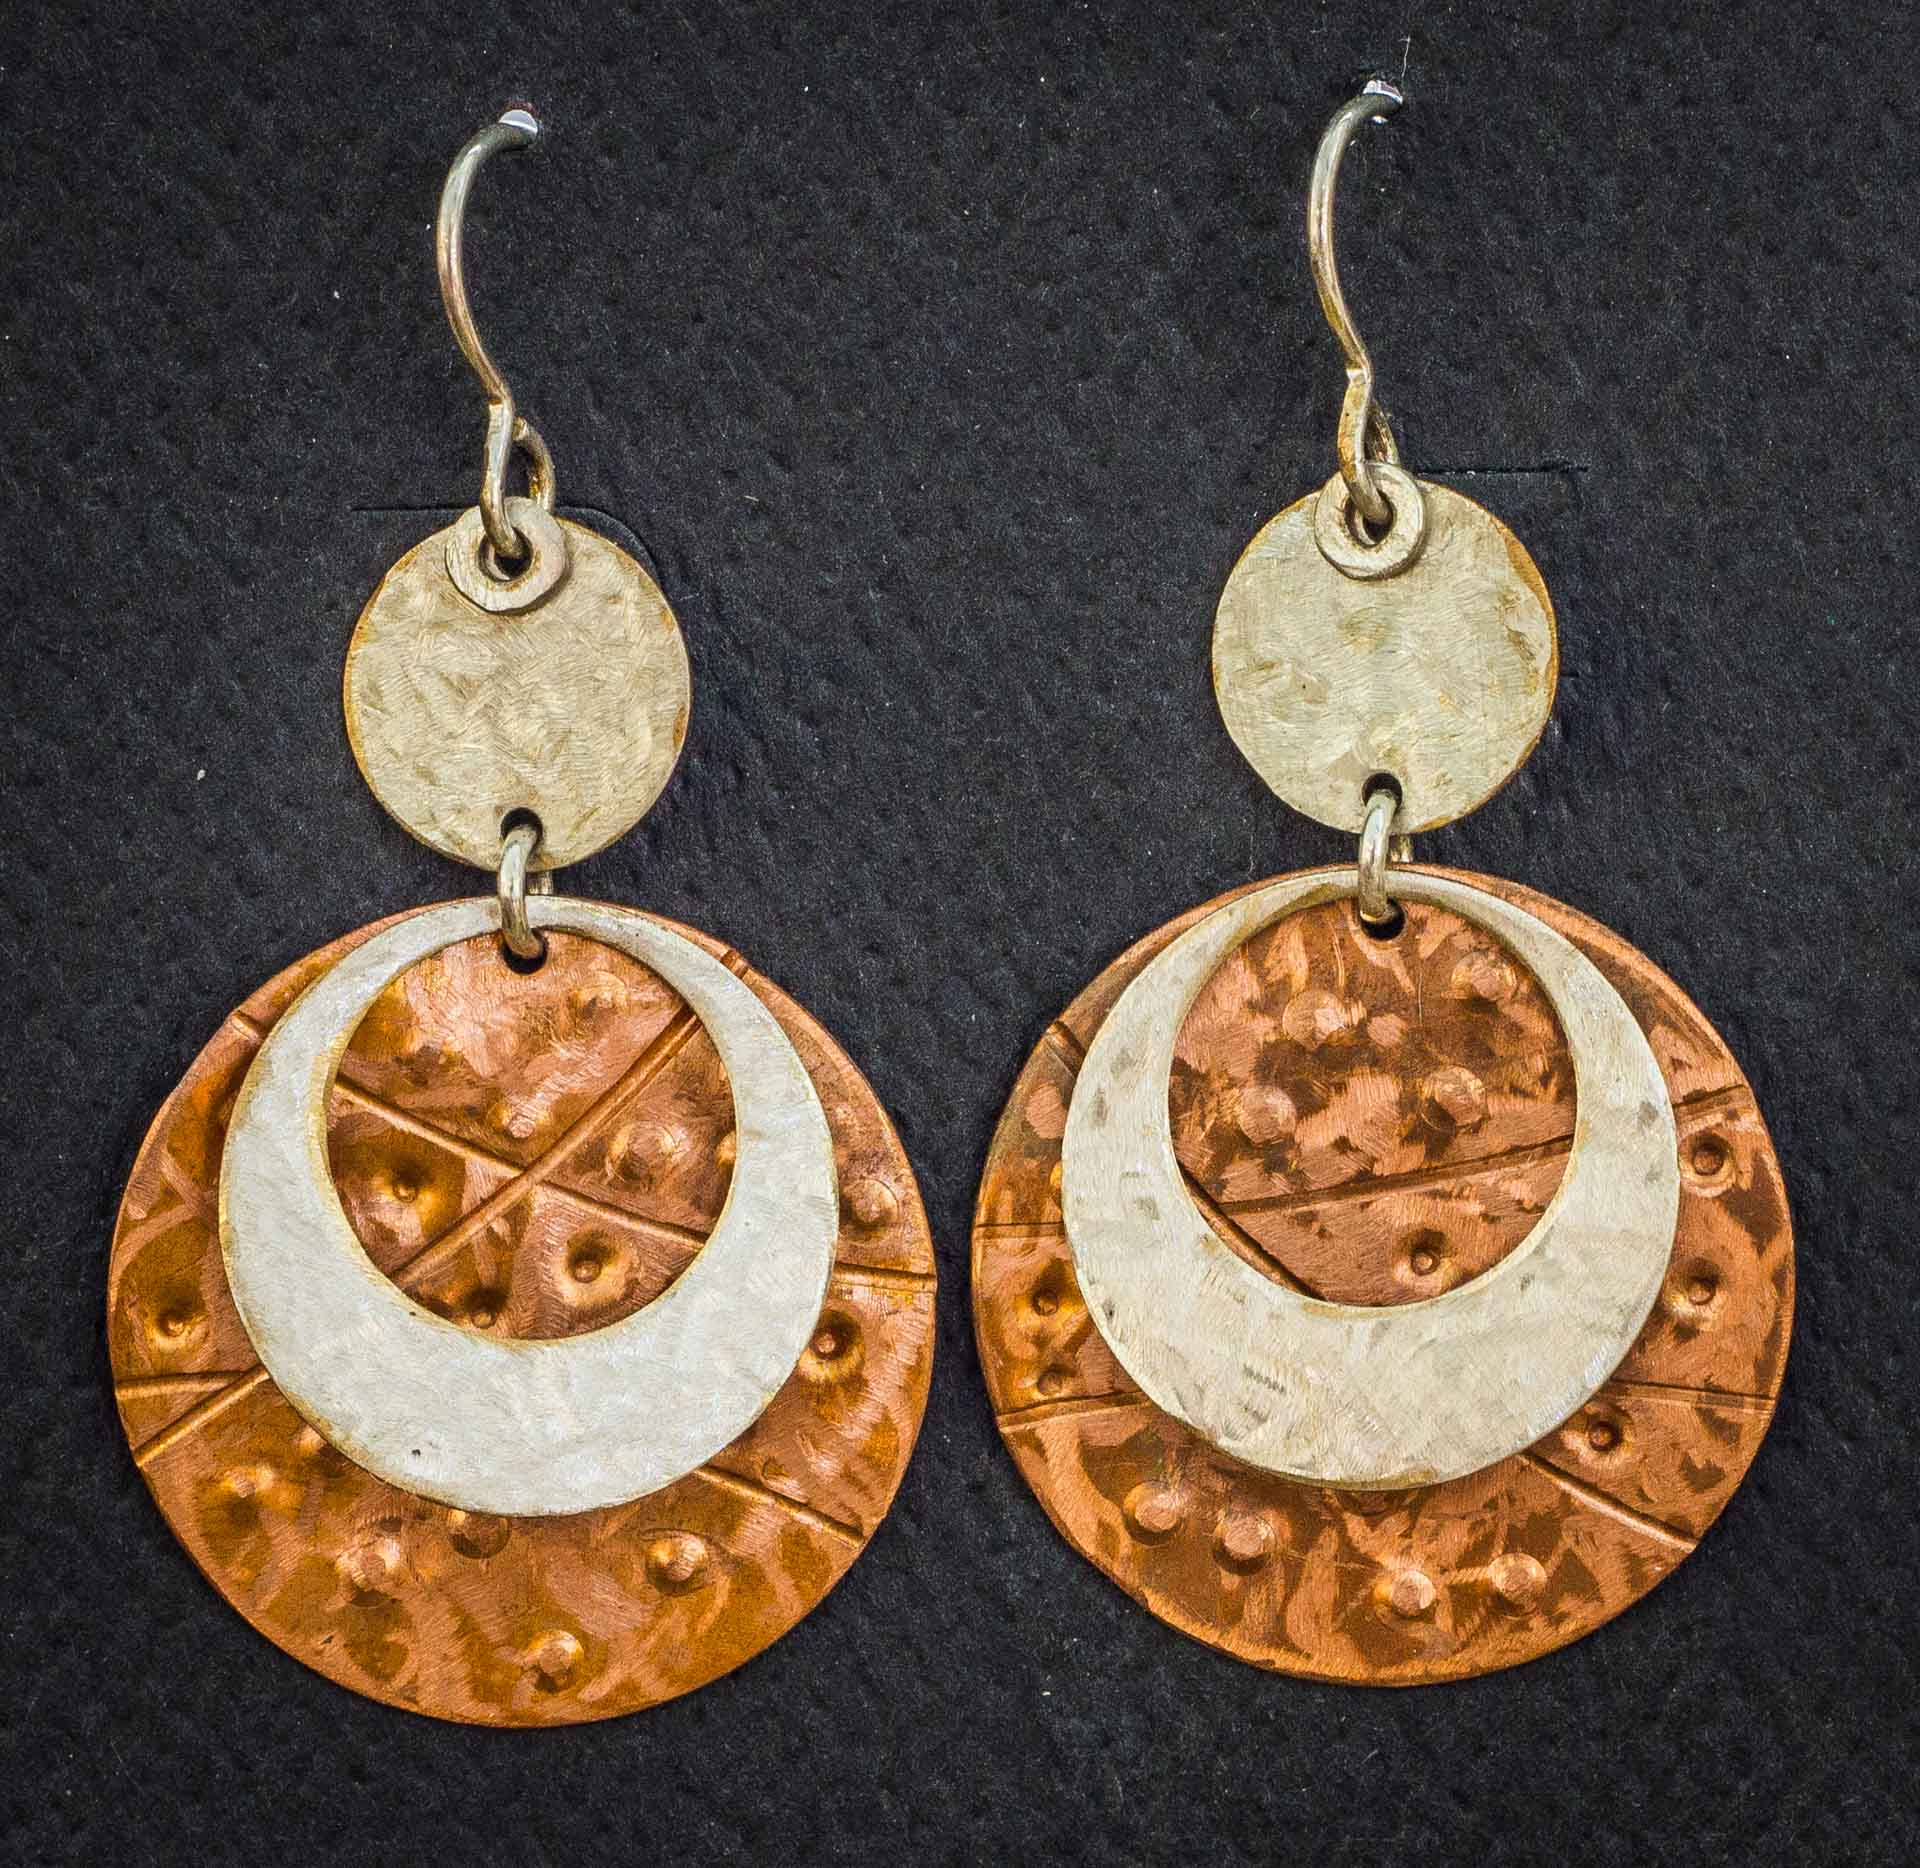 Earring pair 3 by Susie Hettleman